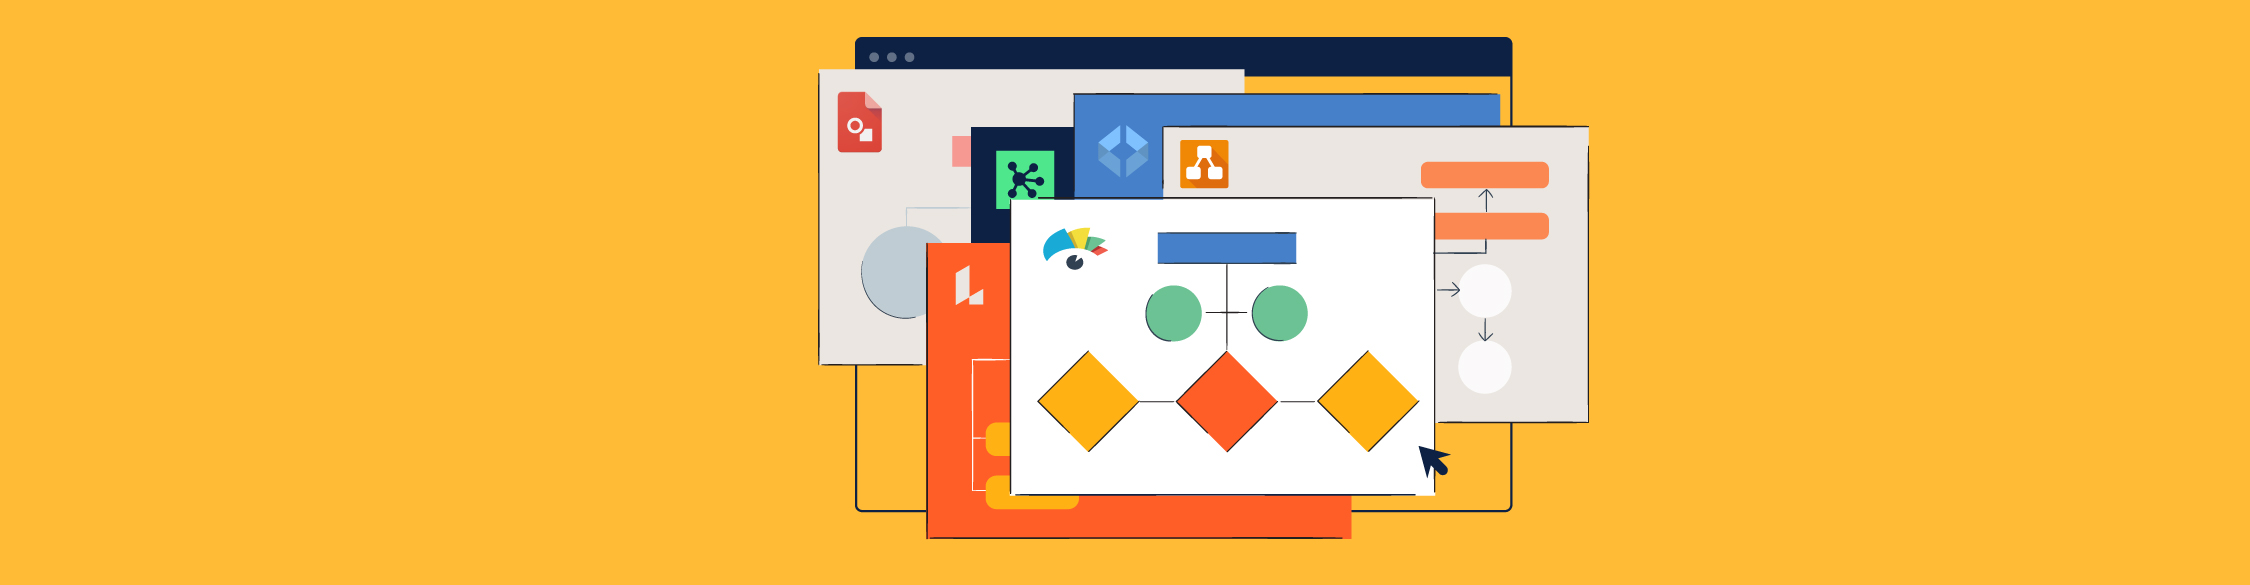 40 Best Online Visio Alternatives for Making Diagrams Free & Paid